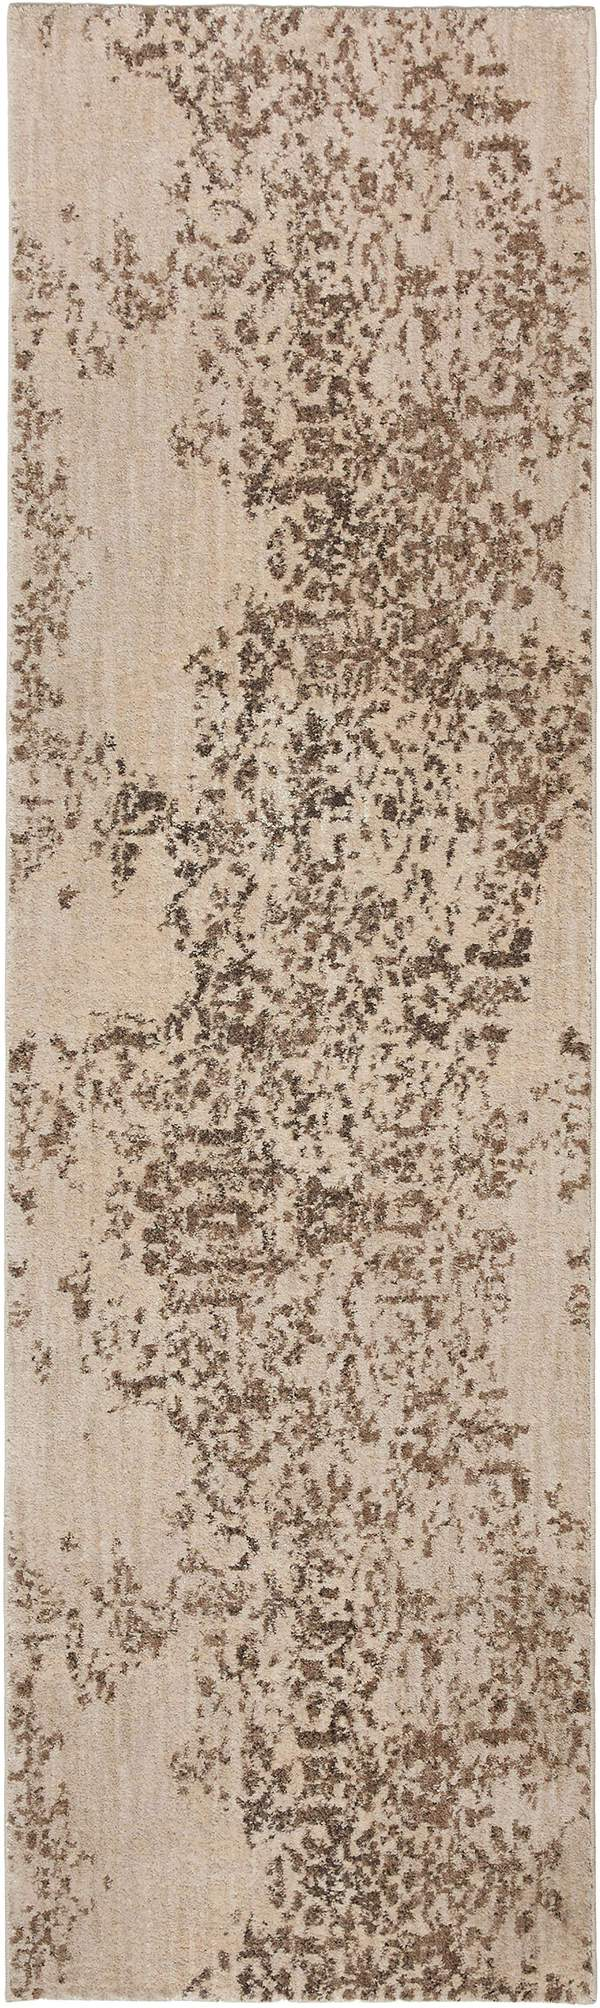 Karastan Rugs Cosmopolitan Nirvana Smokey Grey by Virginia Langley